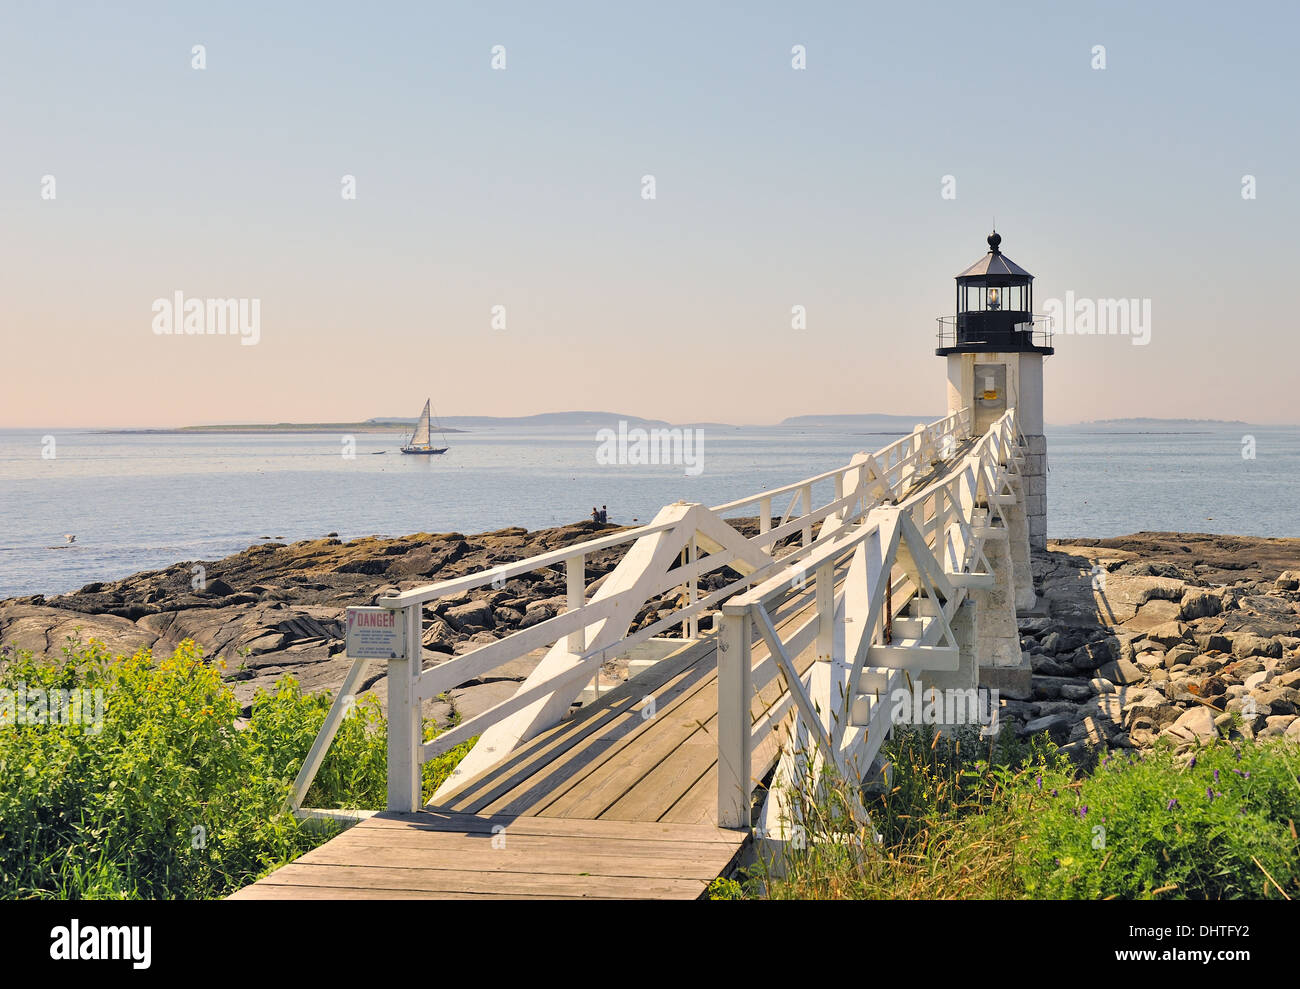 marshall-point-lighthouse-with-view-of-penobscot-bay-and-sailboat-DHTFY2.jpg